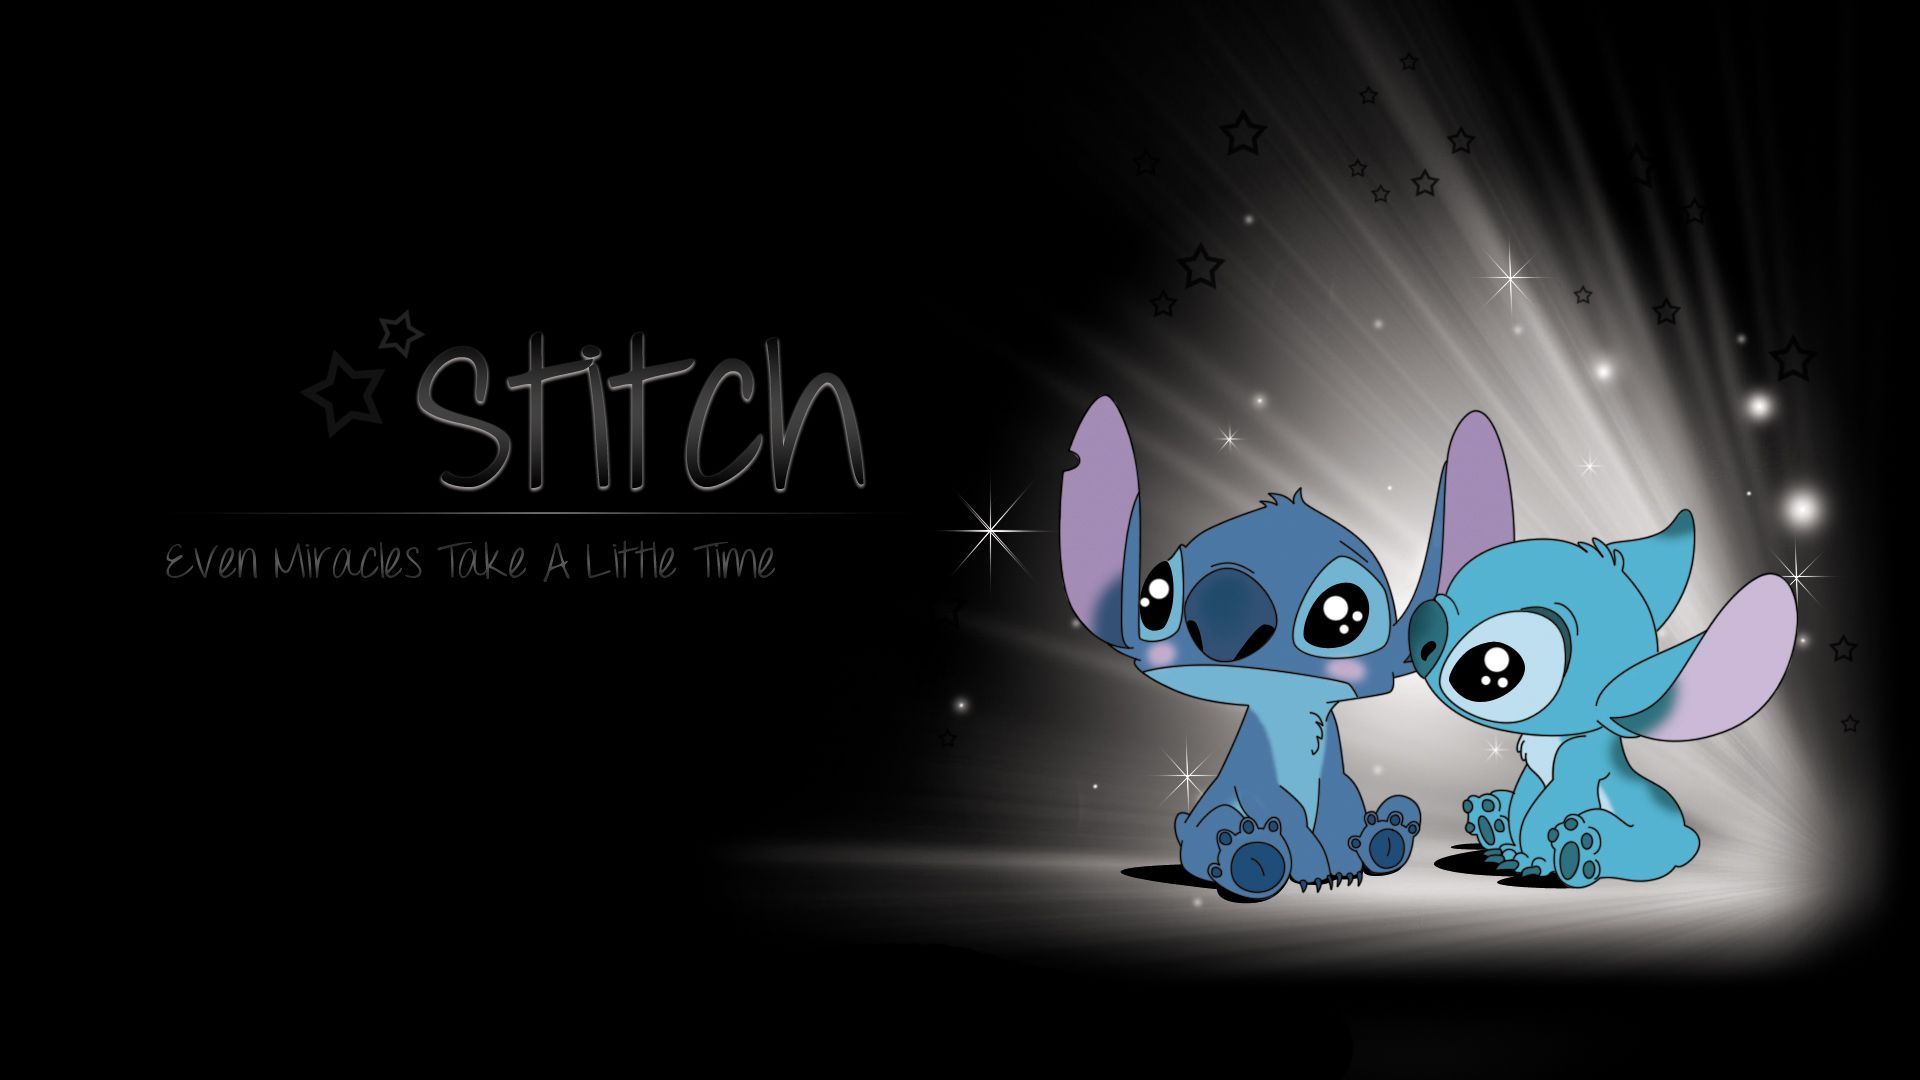 Lilo And Stitch Favourites By Roxiepoxii On Deviantart Disney Characters Wallpaper Cute Disney Wallpaper Stitch Disney